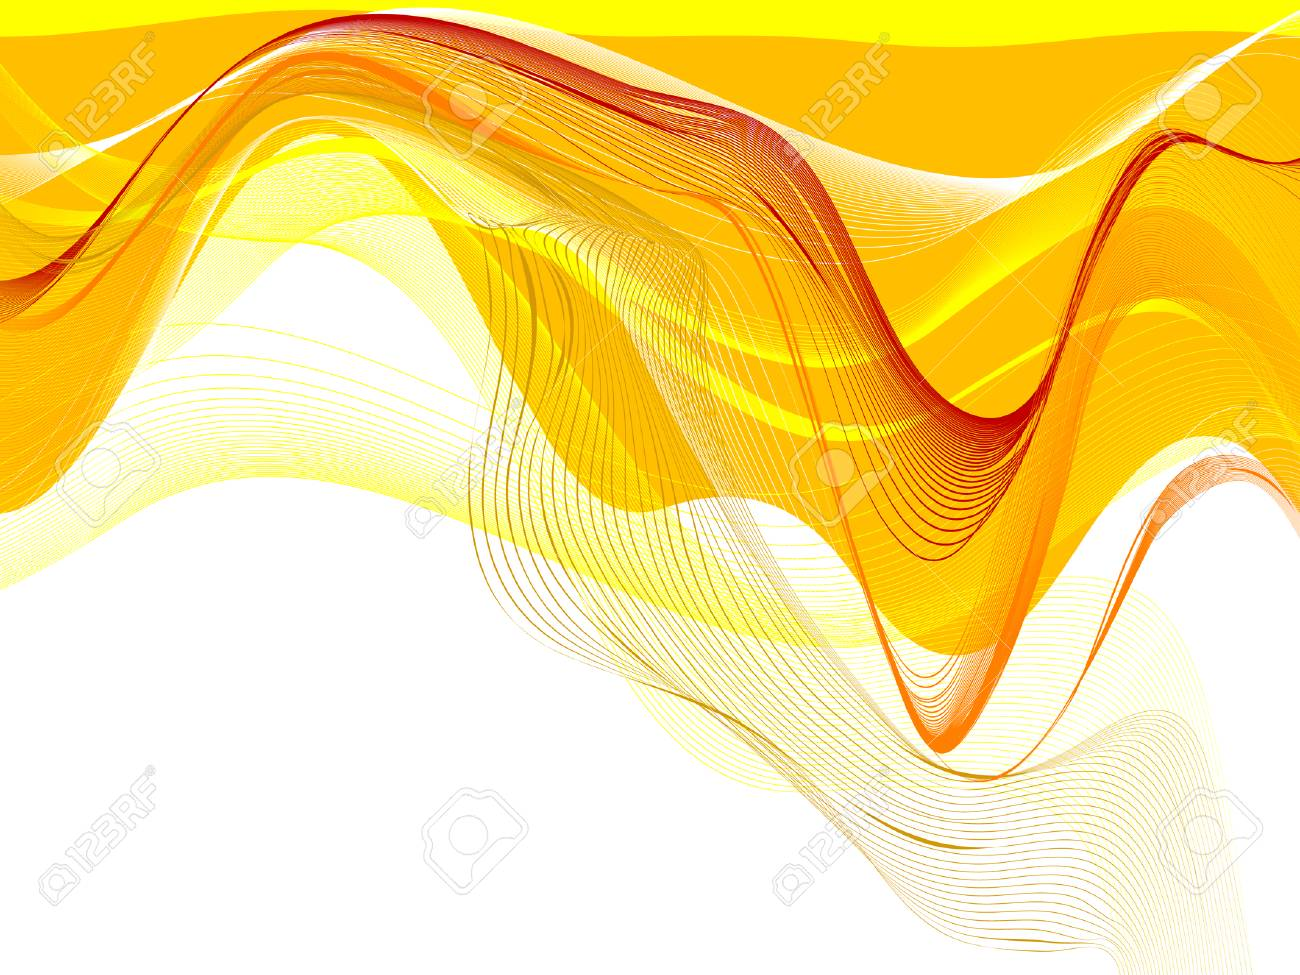 abstract background, vector, stylized waves, place for text Stock Vector - 3674074